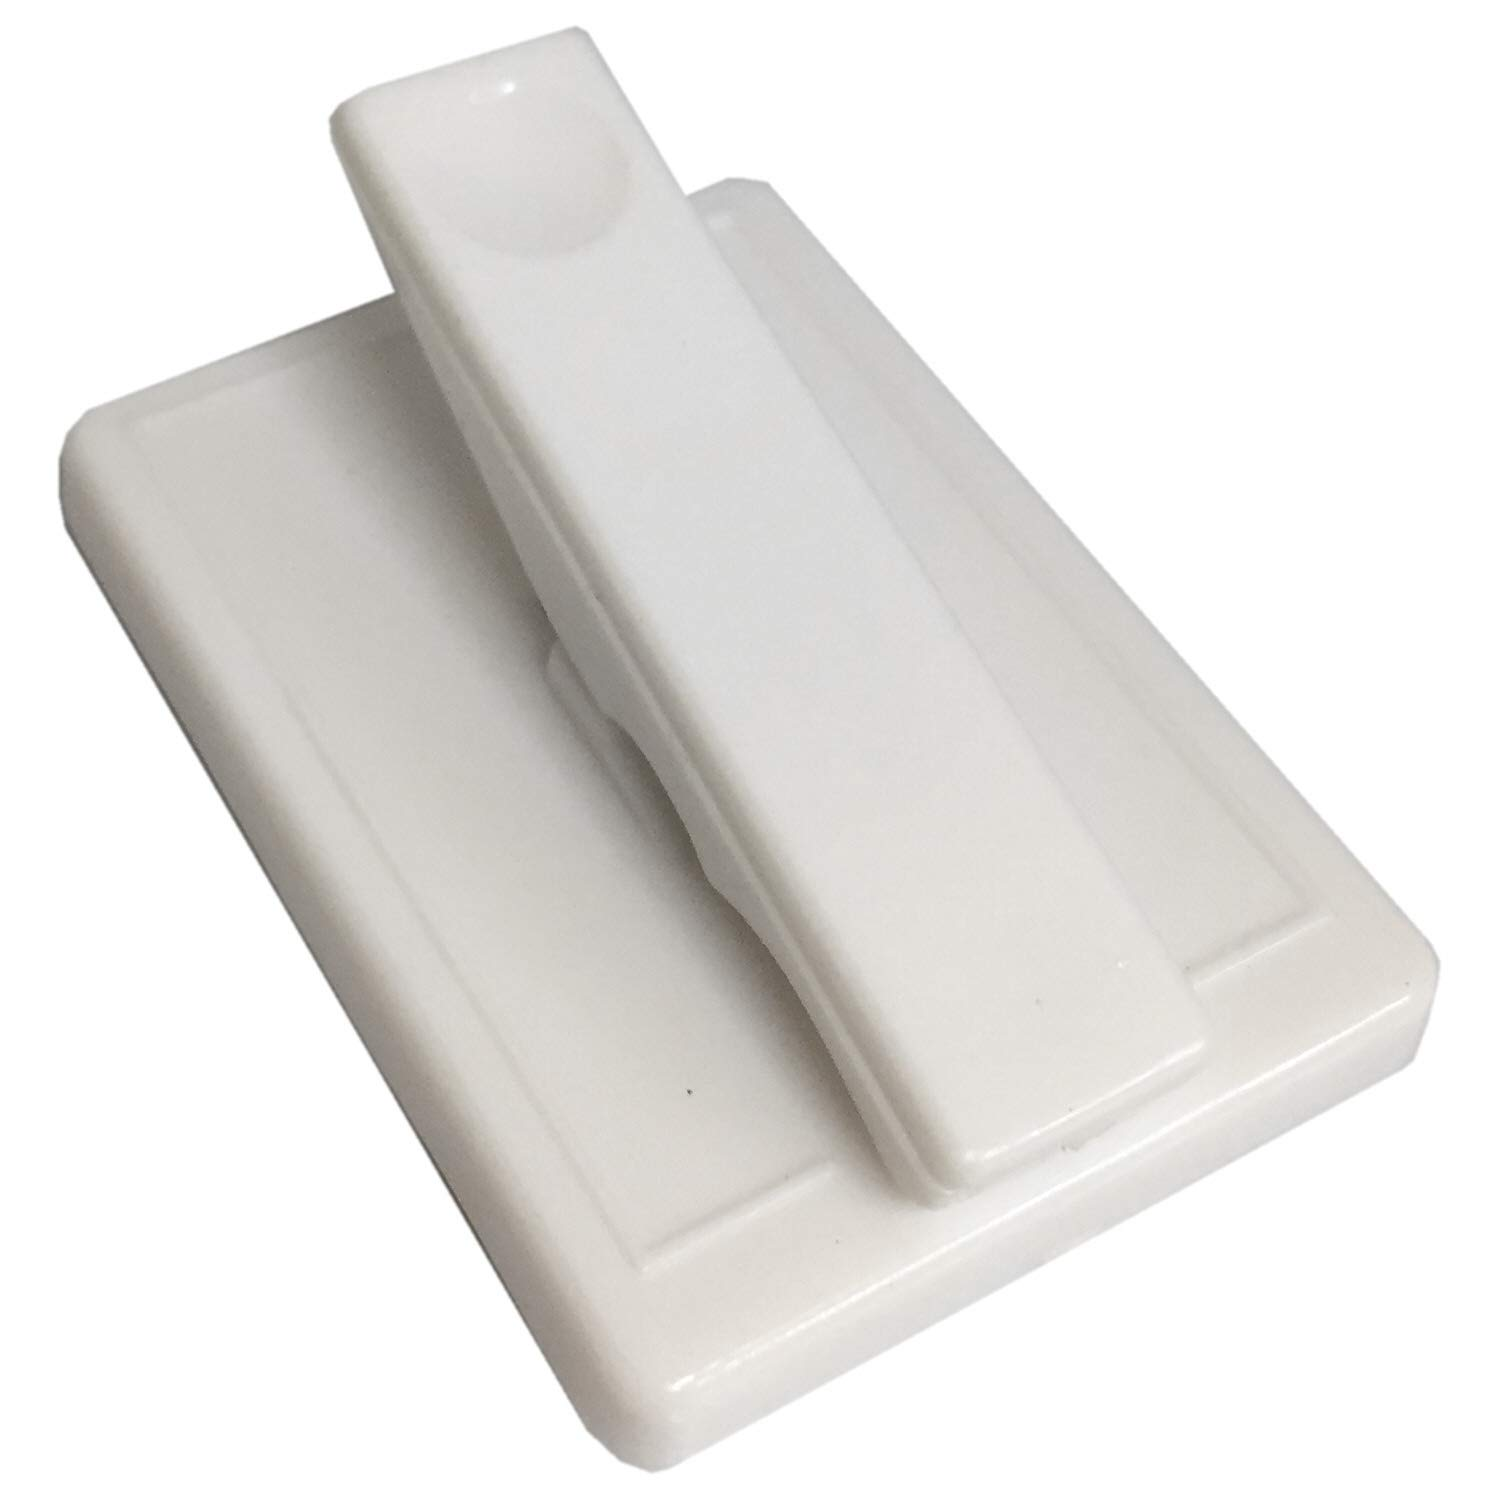 Linx Bill Ticket Clips Self Adhesive 48 x 32mm White Pack of 4